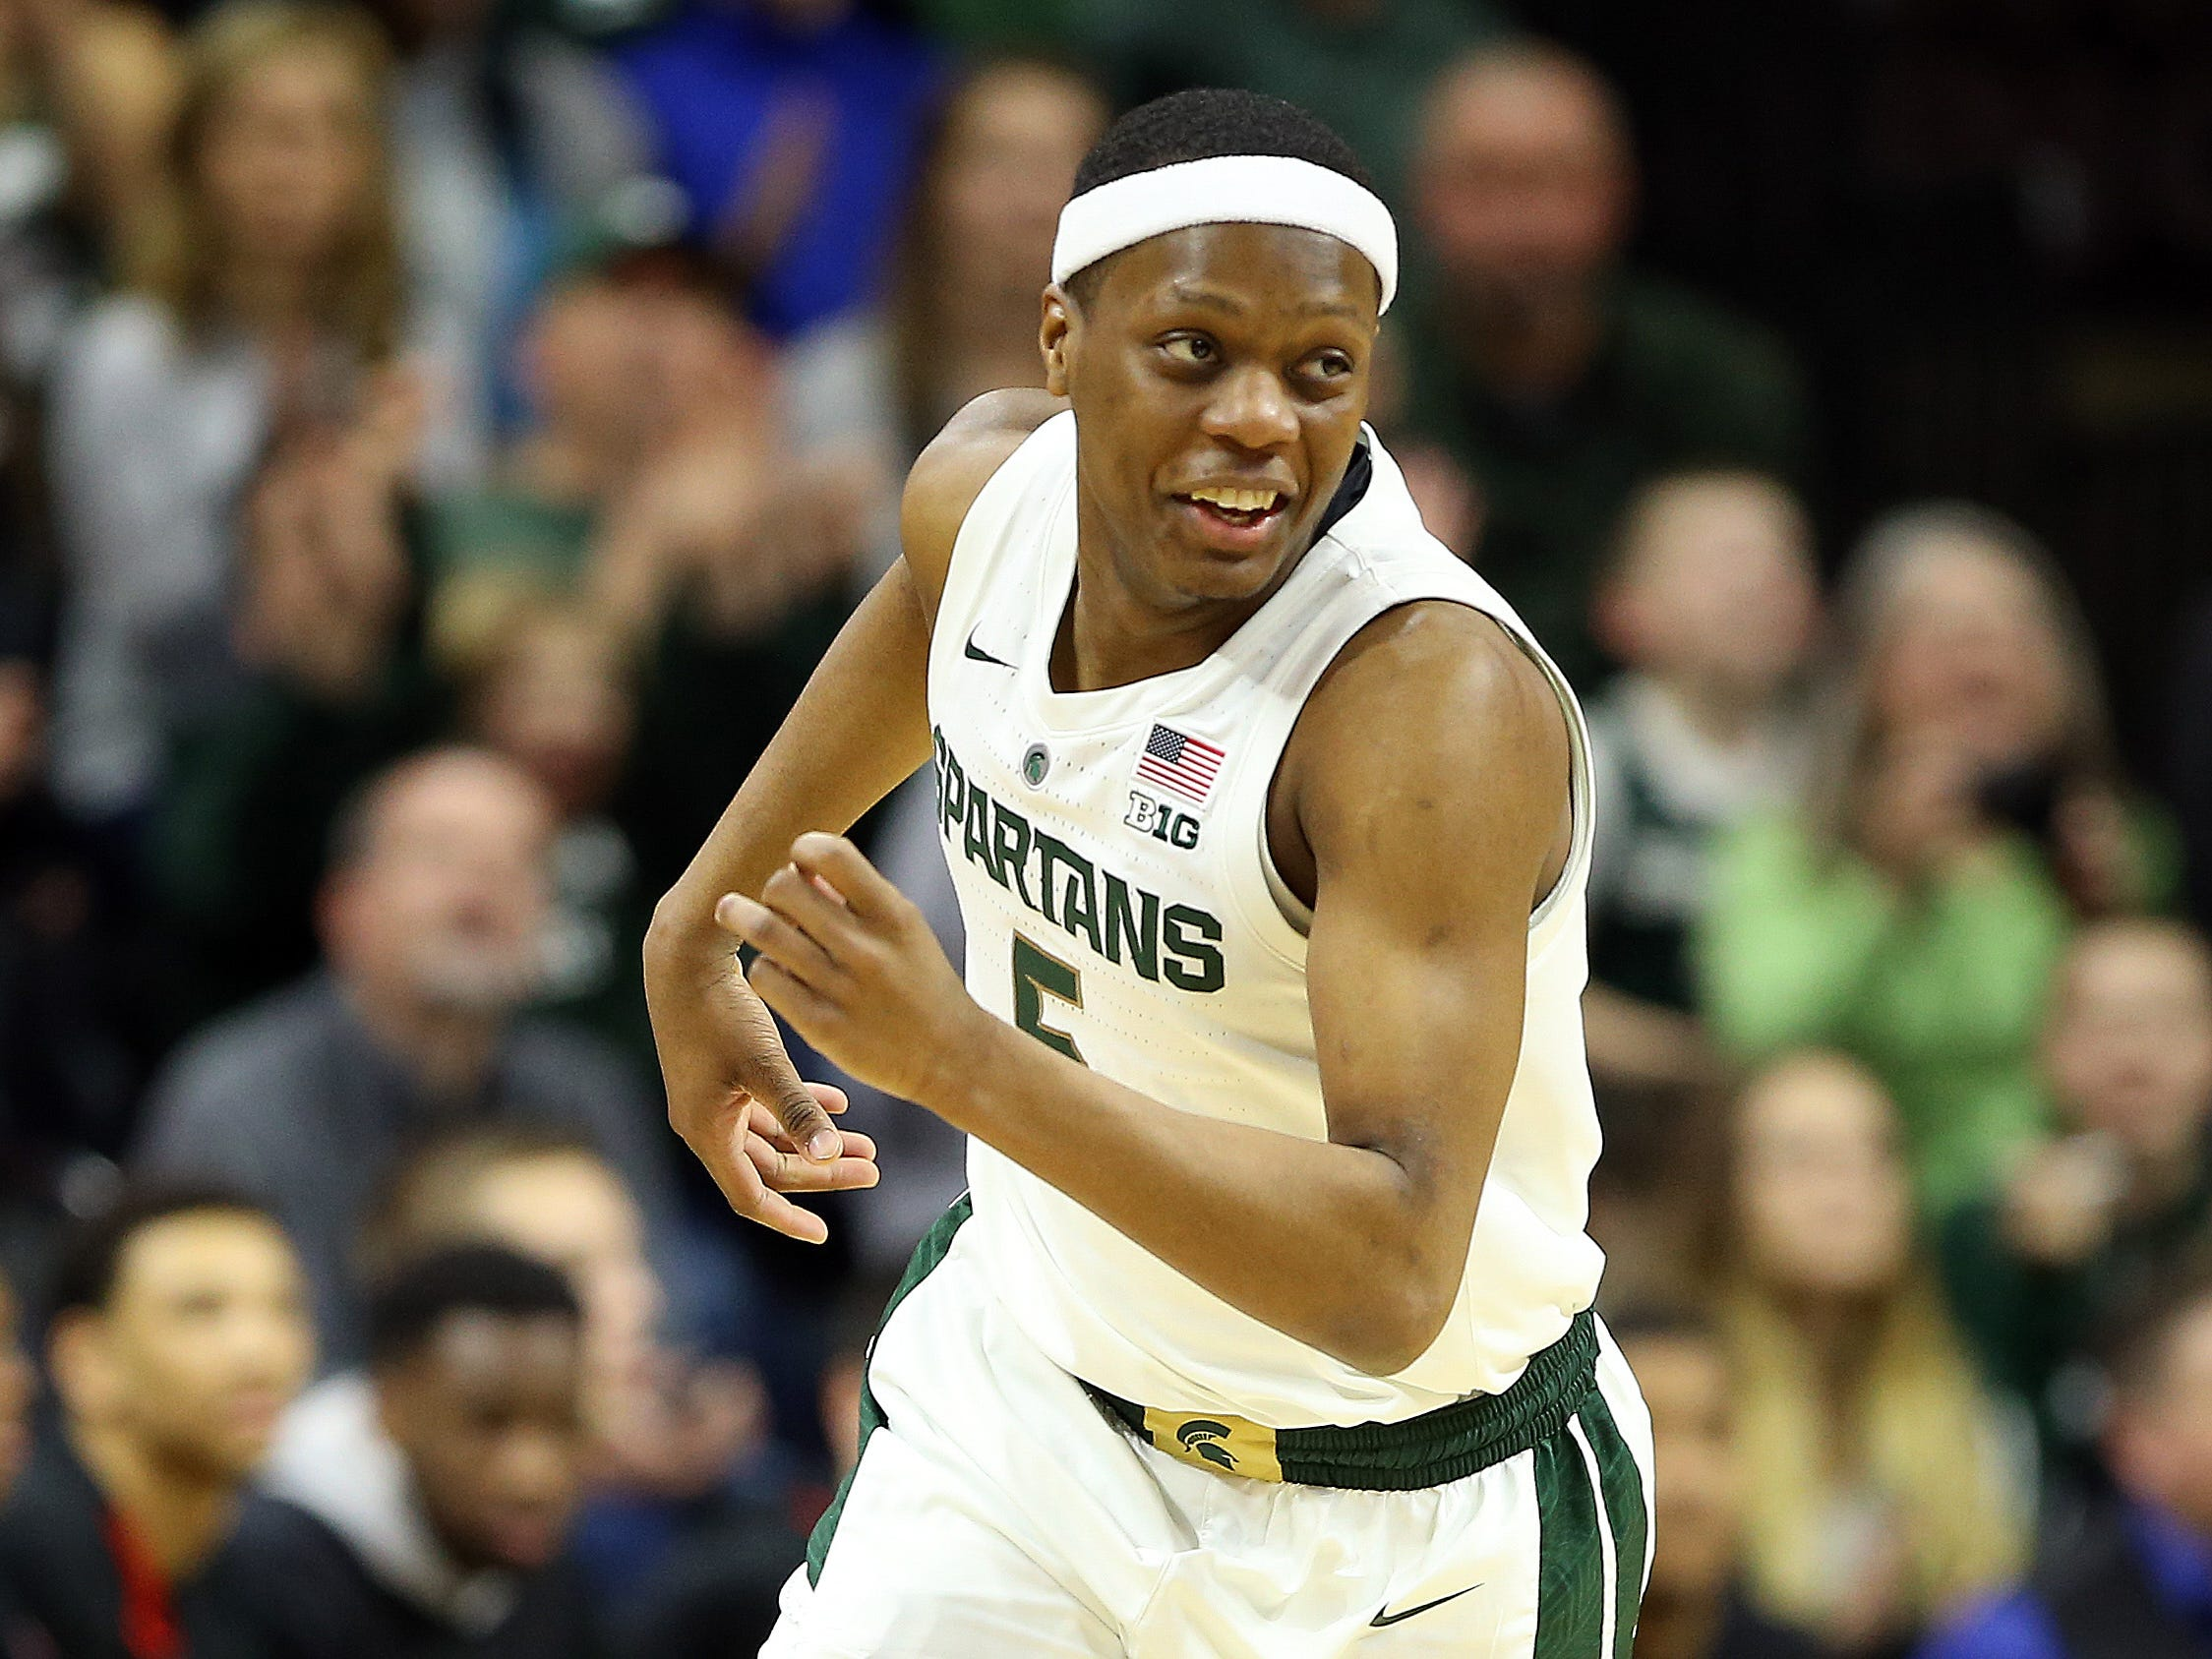 Michigan State Spartans guard Cassius Winston (5) reacts during the first half of a game against the Northern Illinois Huskies at the Breslin Center.